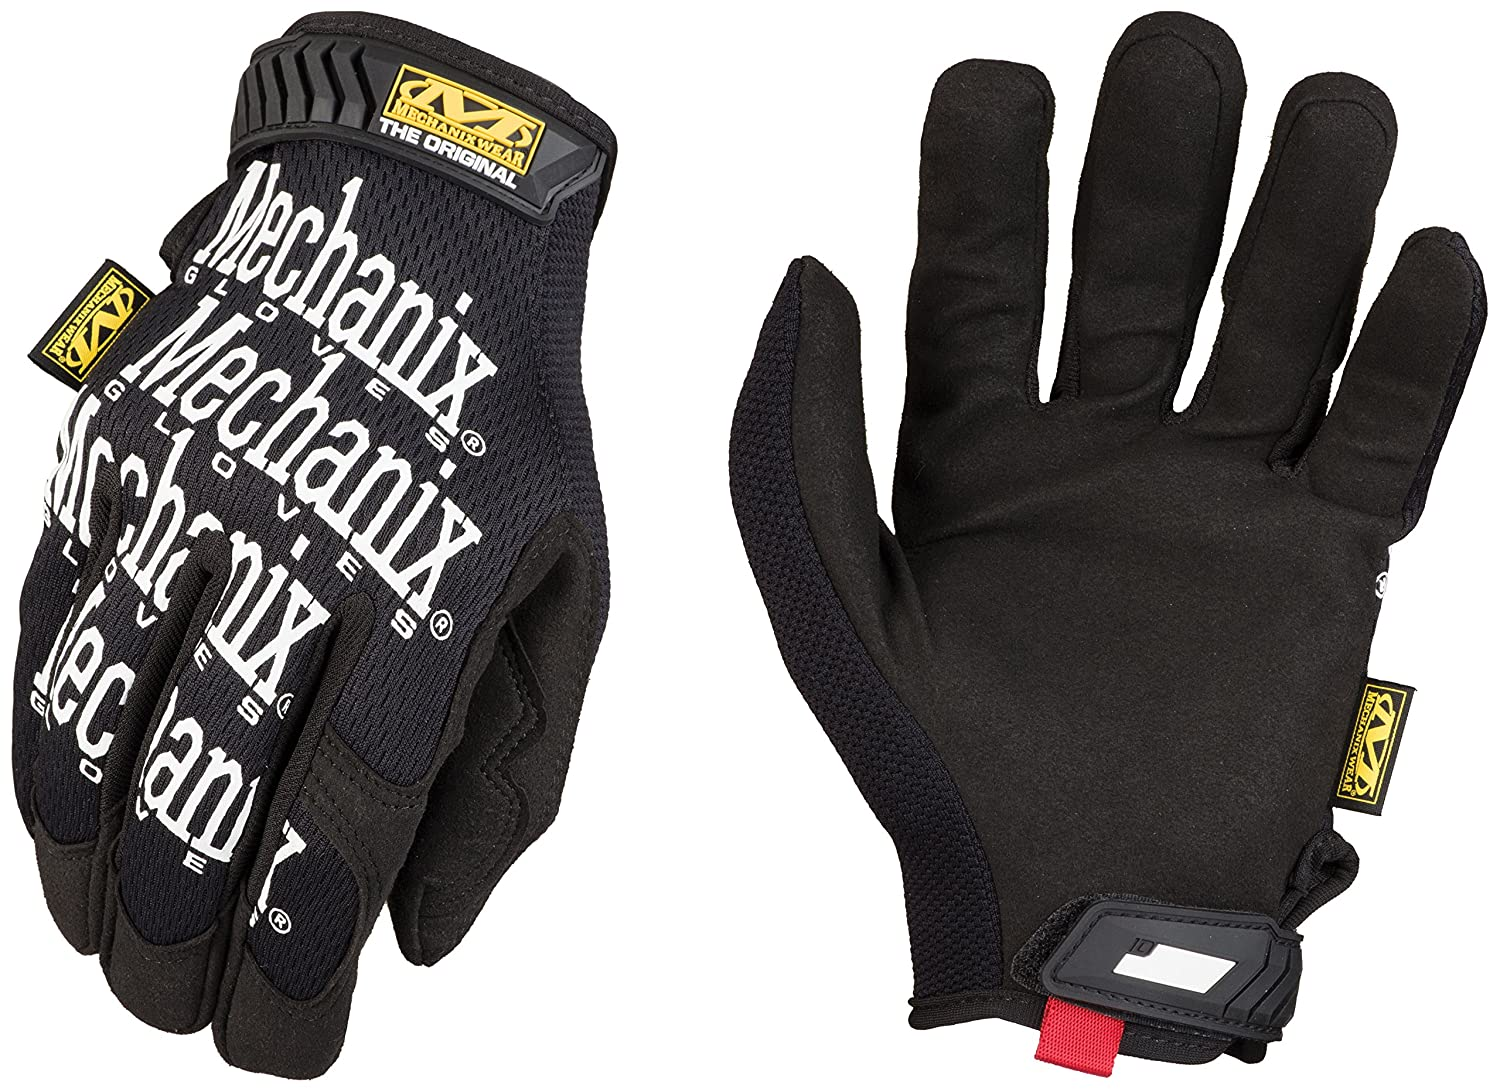 Find great deals on eBay for mechanic gloves. Shop with confidence.